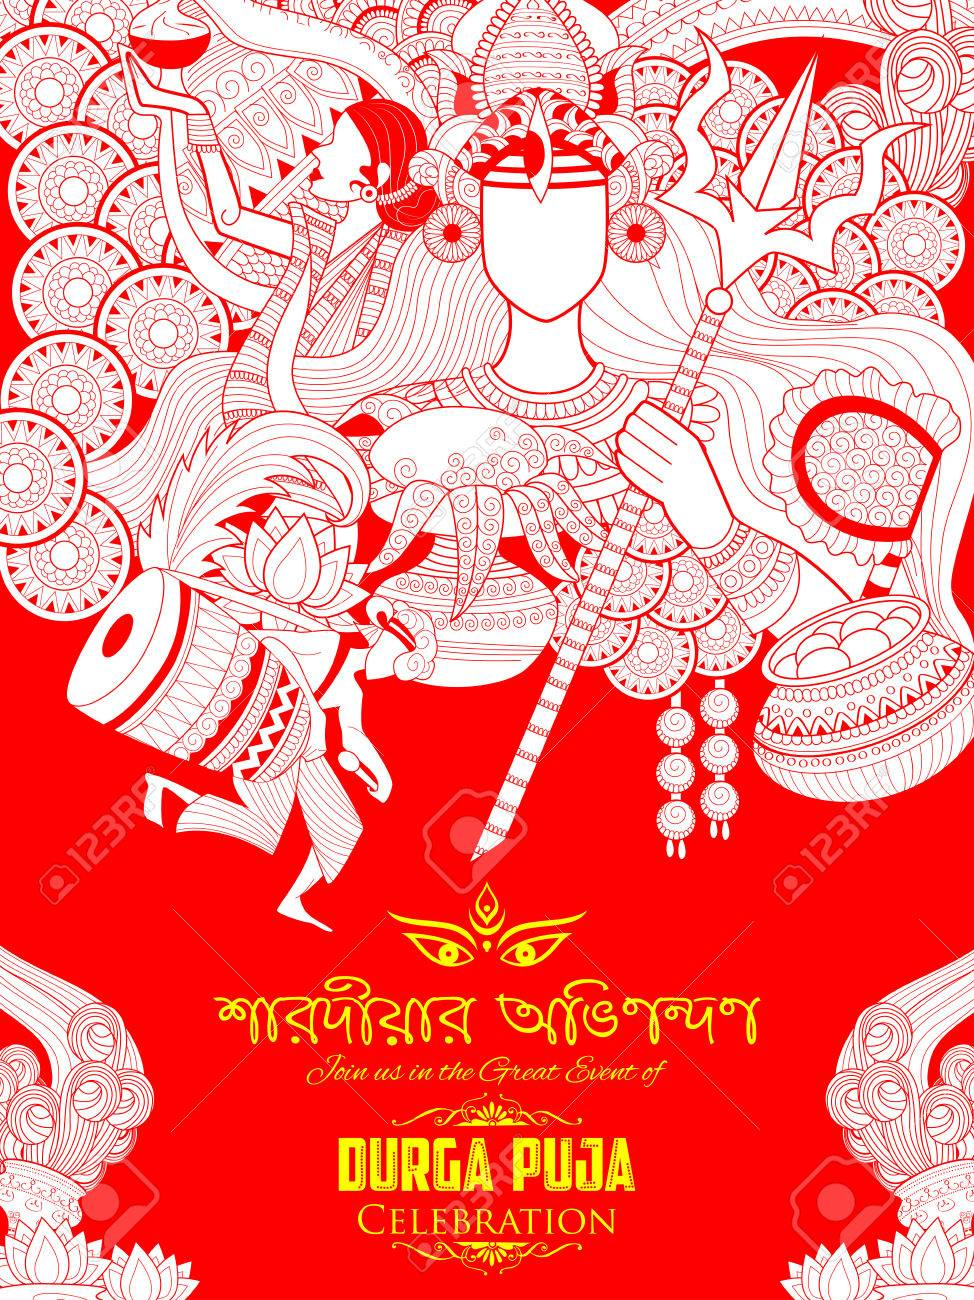 Goddess Durga in Happy Dussehra background with bengali text